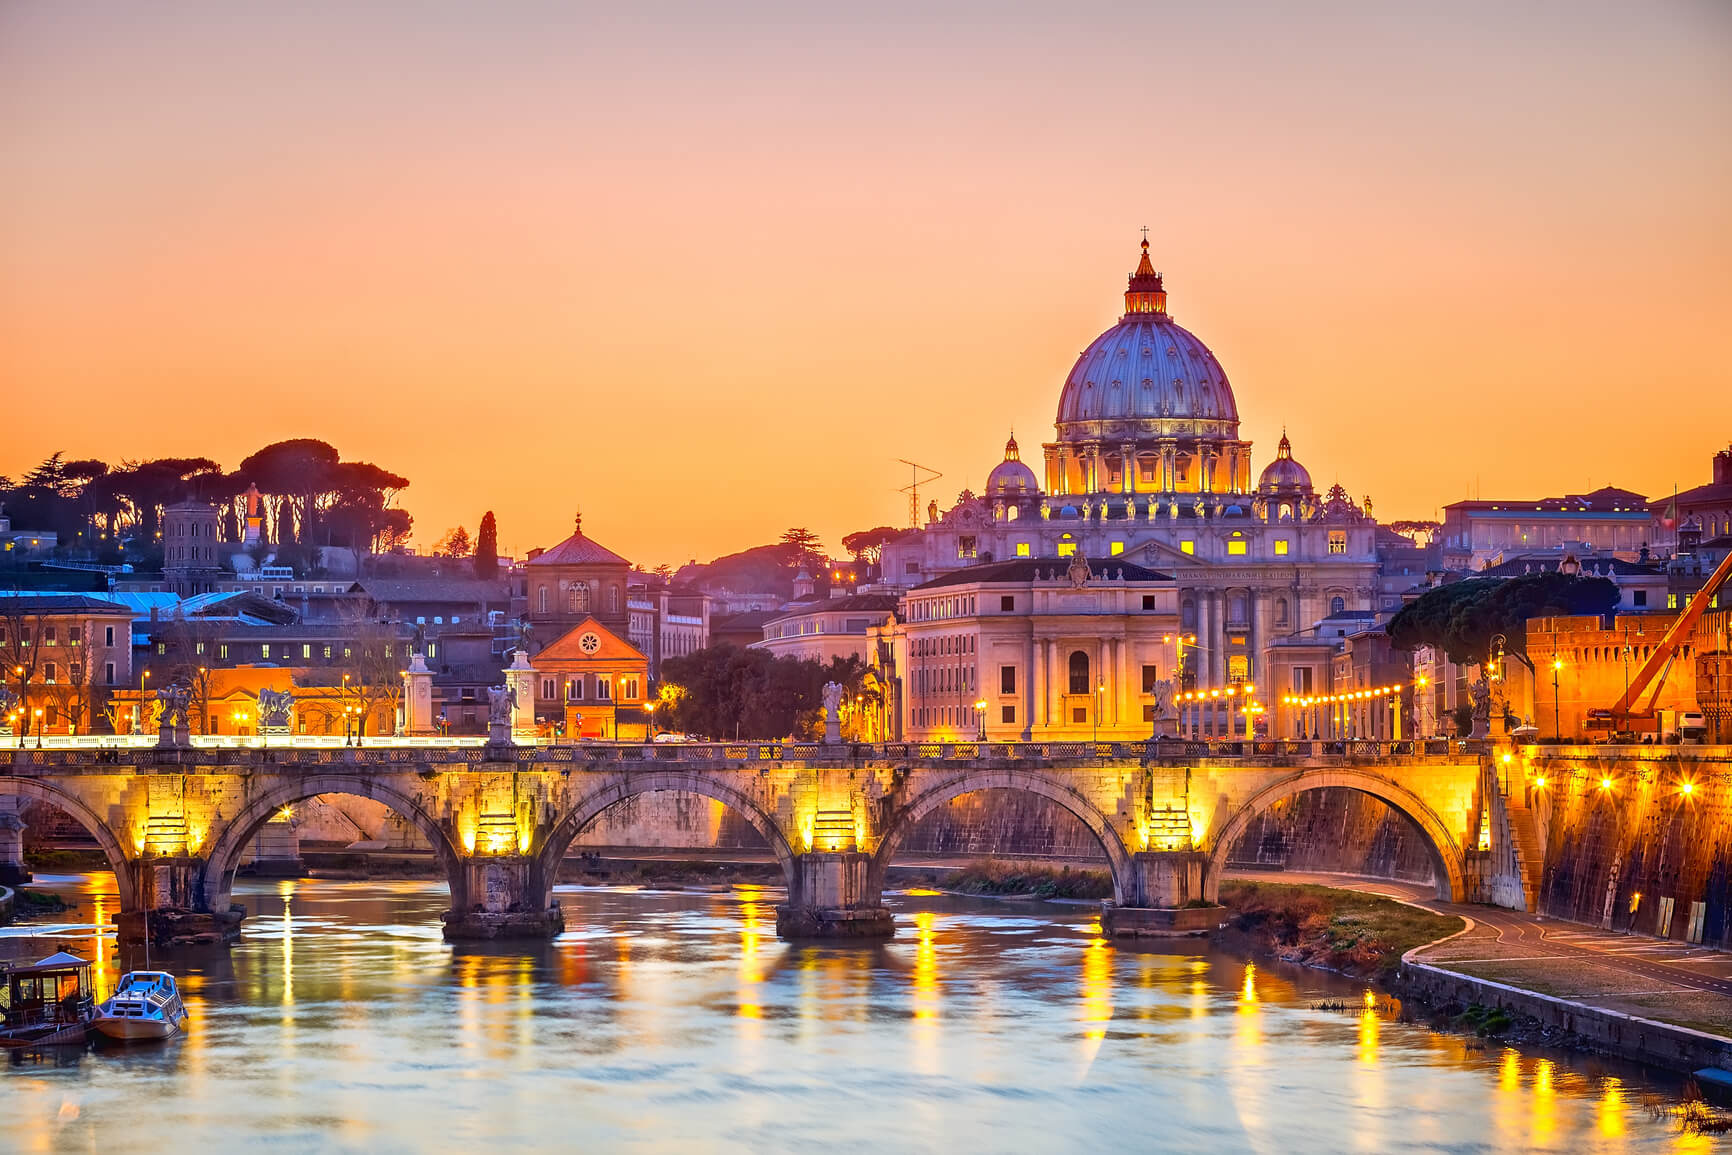 Toronto, Canada to Rome, Italy for only $536 CAD roundtrip (Oct-Mar dates)